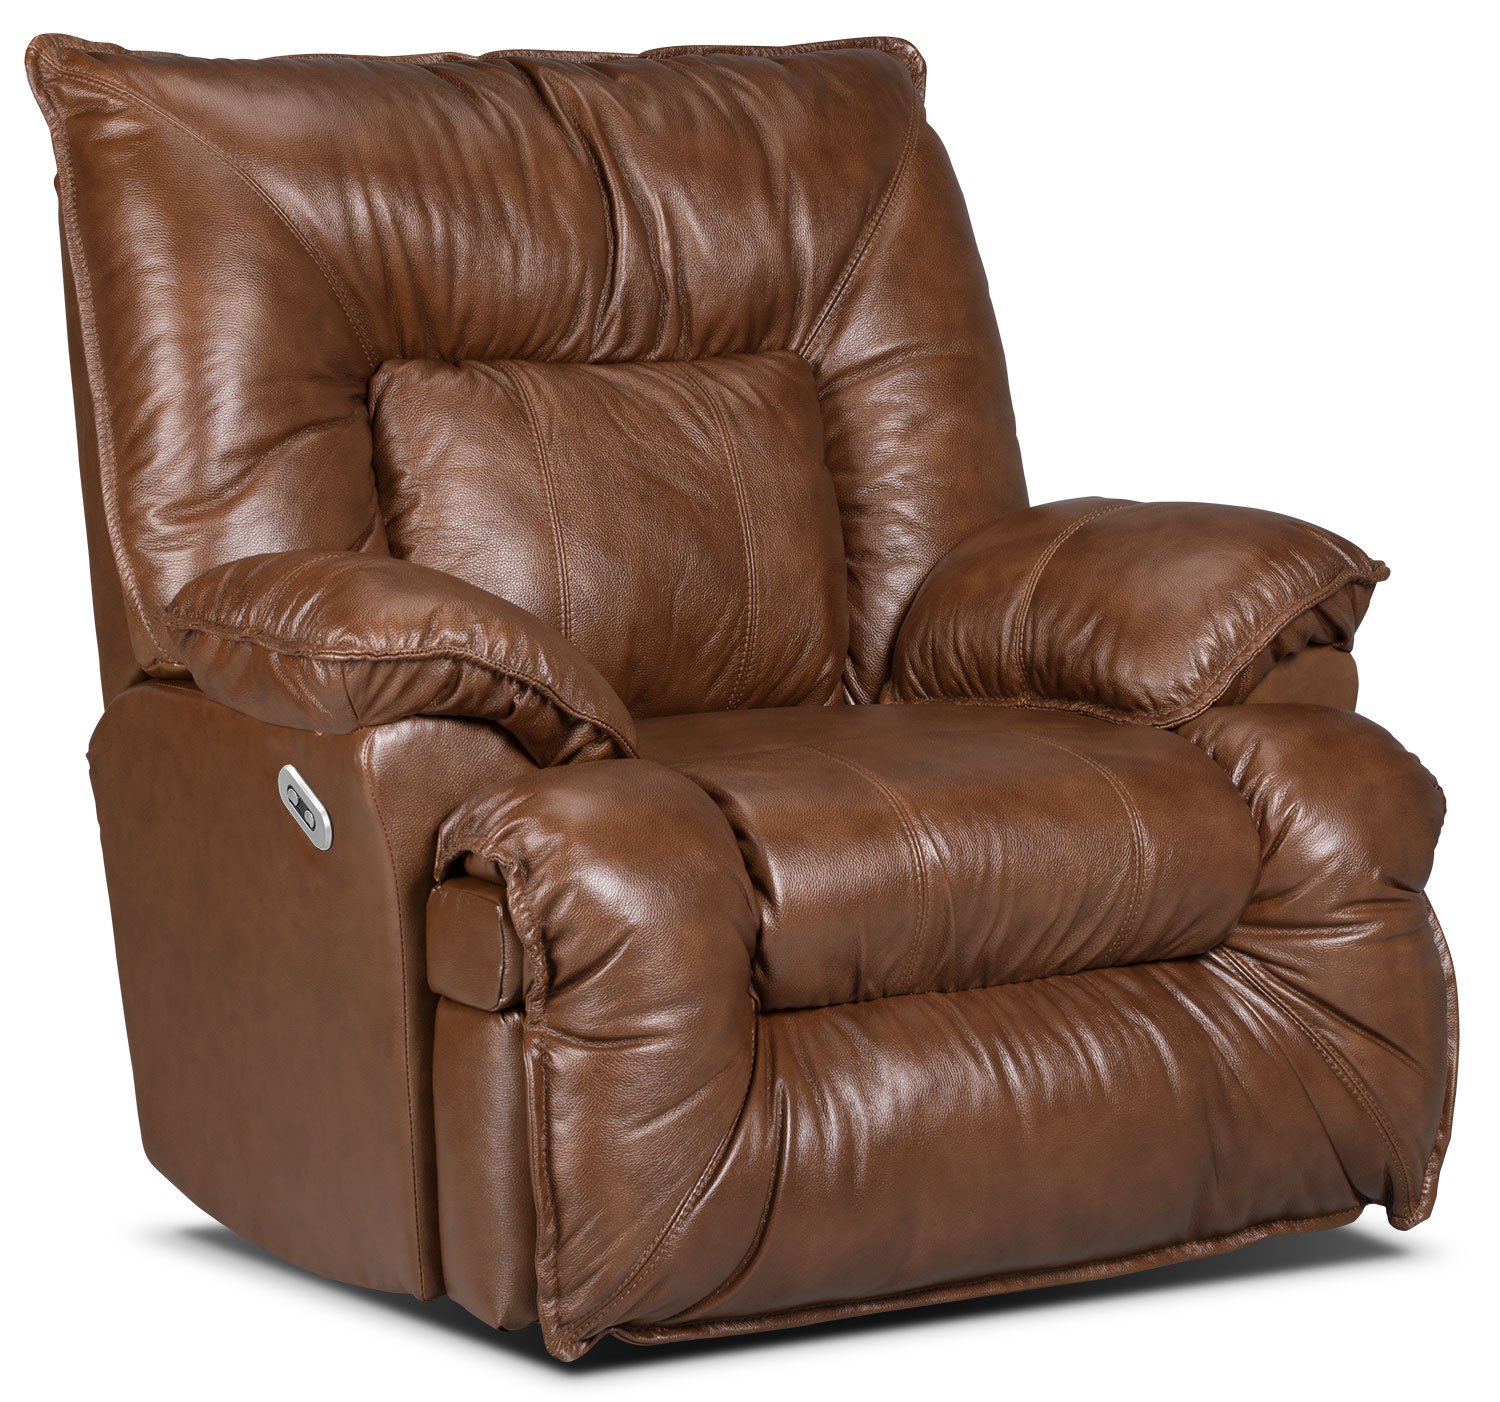 Living Room Furniture - Designed2B Recliner 7726 Genuine Leather Power Lay-Flat Recline Chair - Saddle